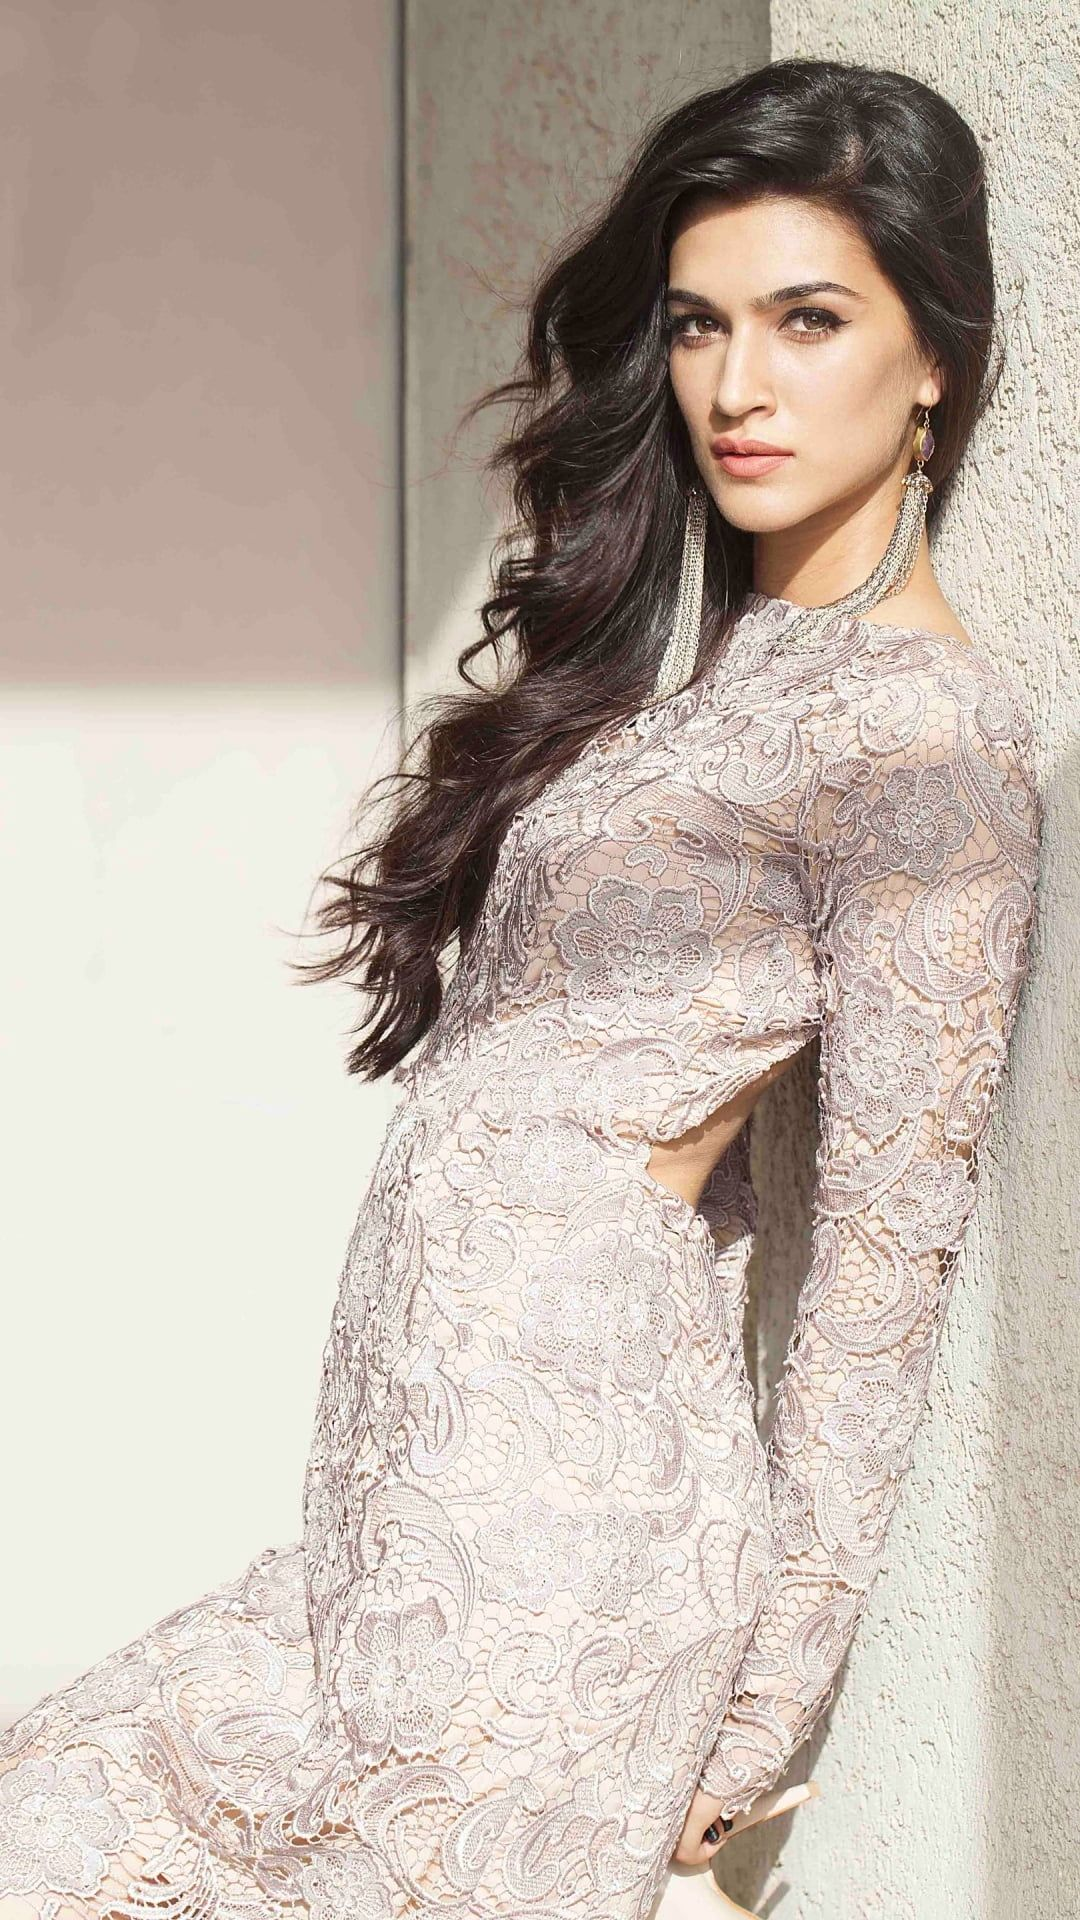 HD wallpaper: Gorgeous Kriti Sanon In White Dress, women's gray floral long-sleeved dress